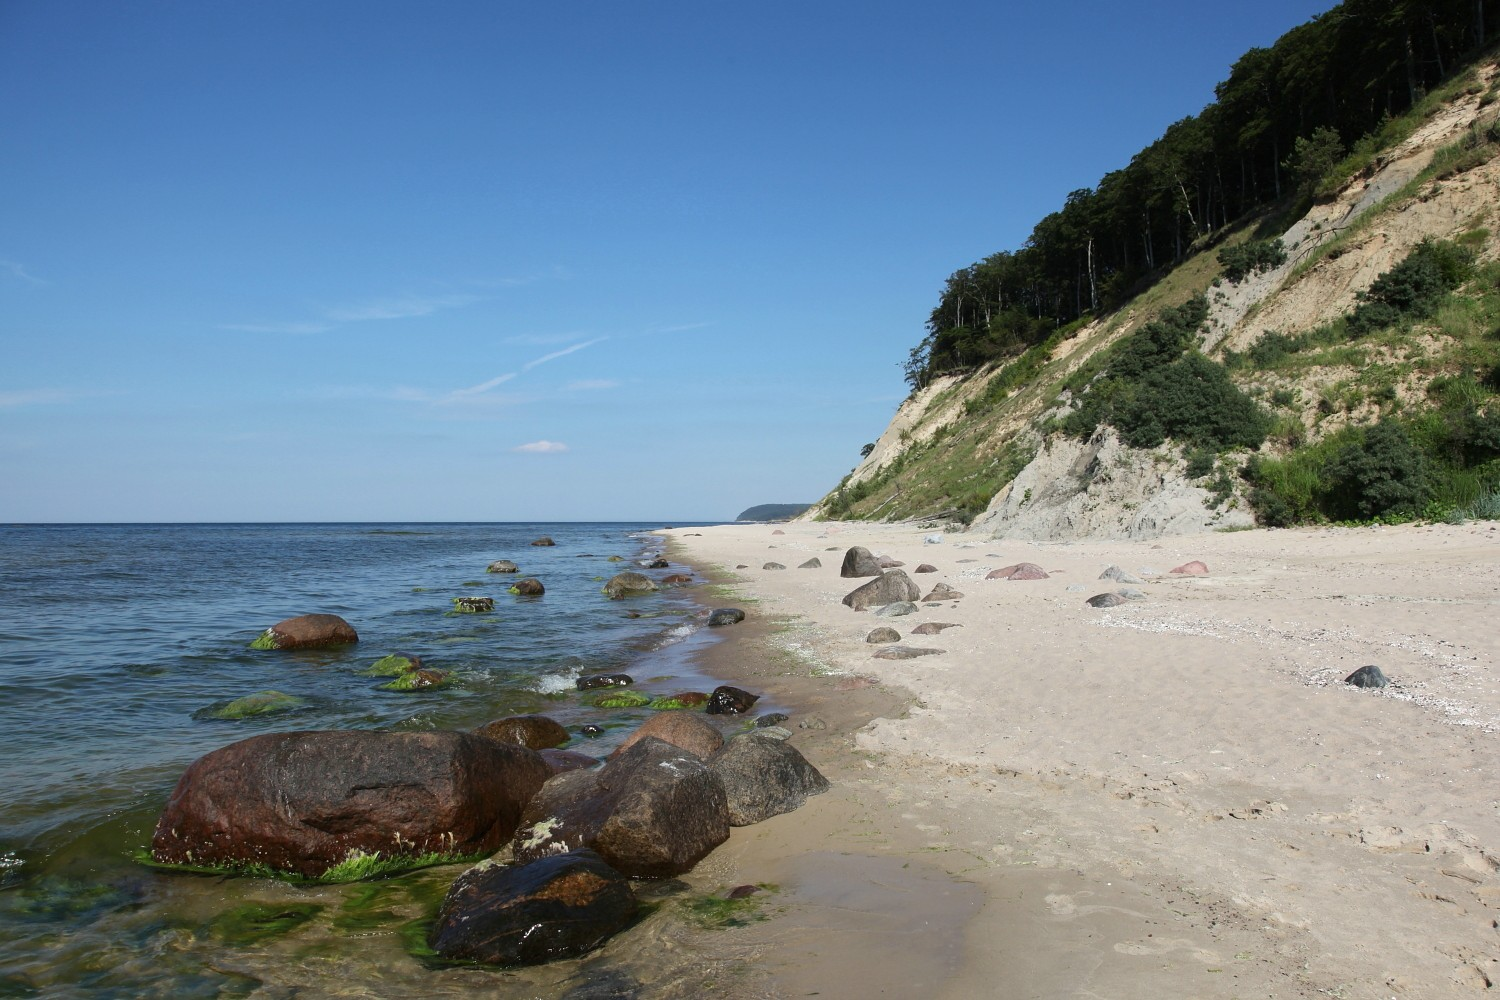 Wolinian cliffs are part of the most beautiful stretch of Polish coast of the Baltic Sea (photo by Sebastian R. Bielak)